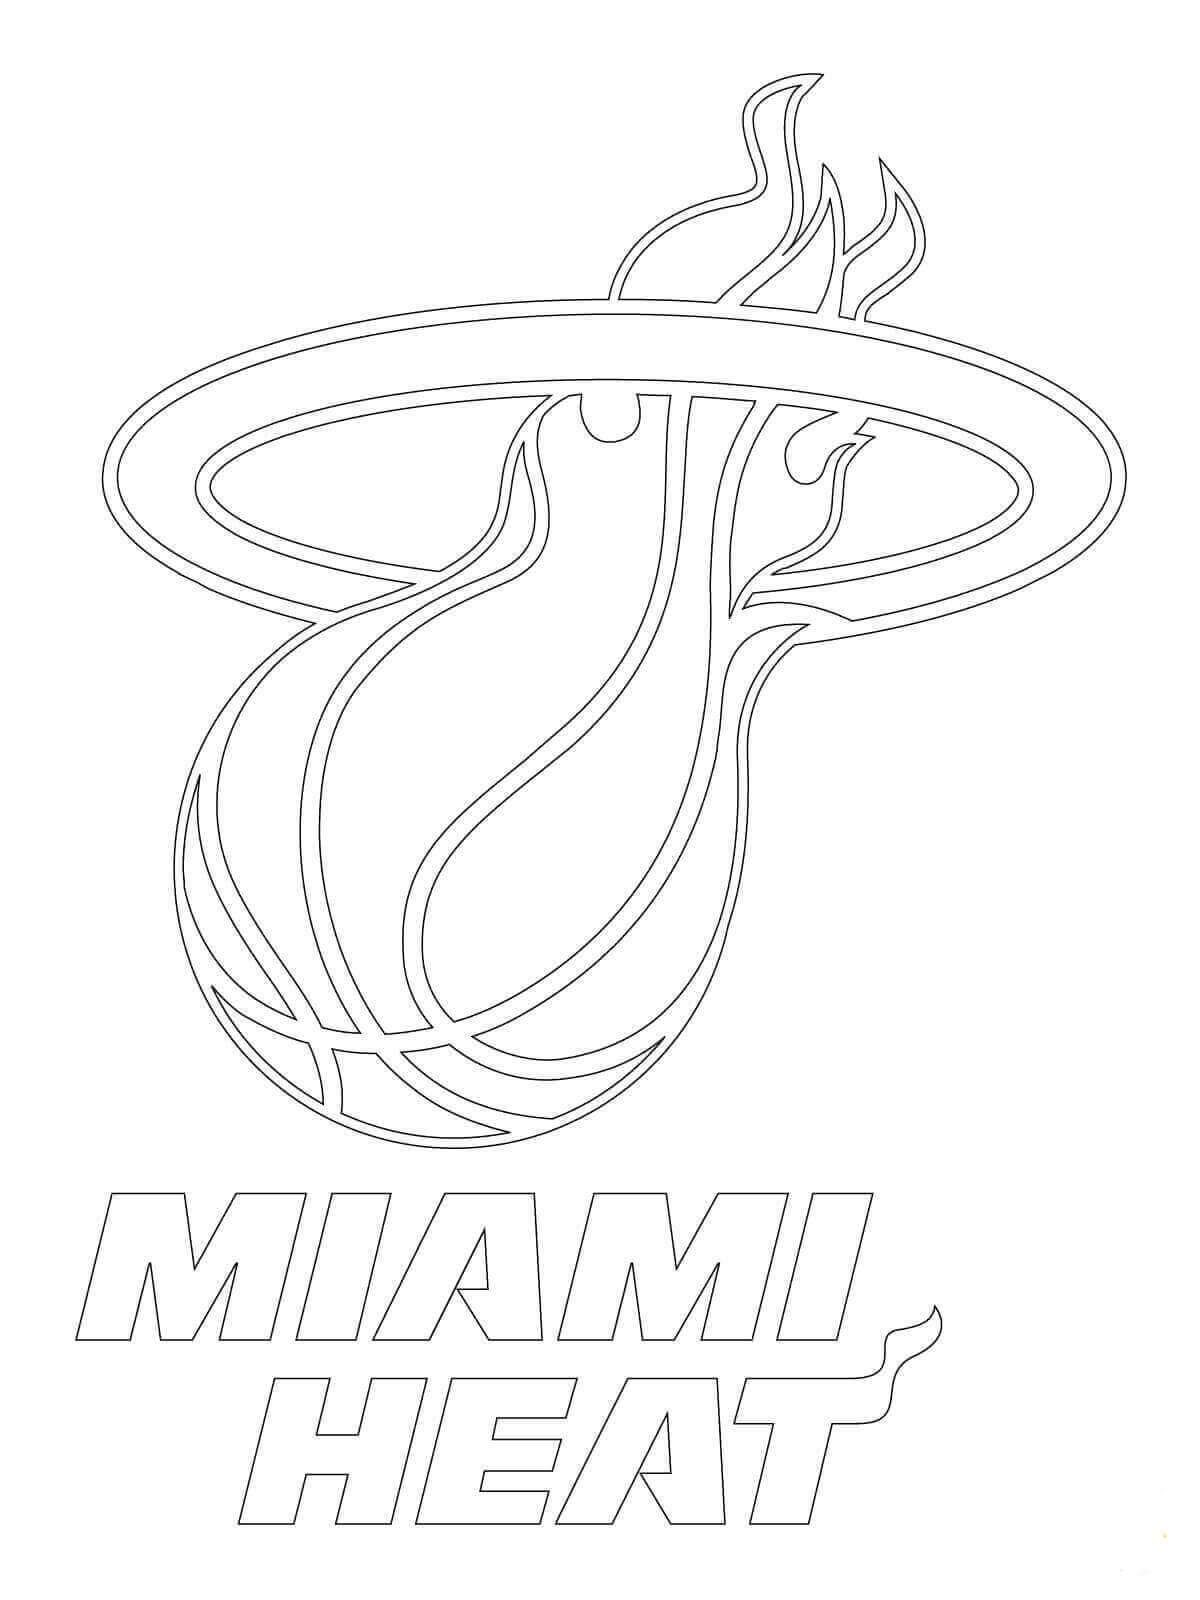 This is a picture of Miami Heat Printable Schedule for regular season